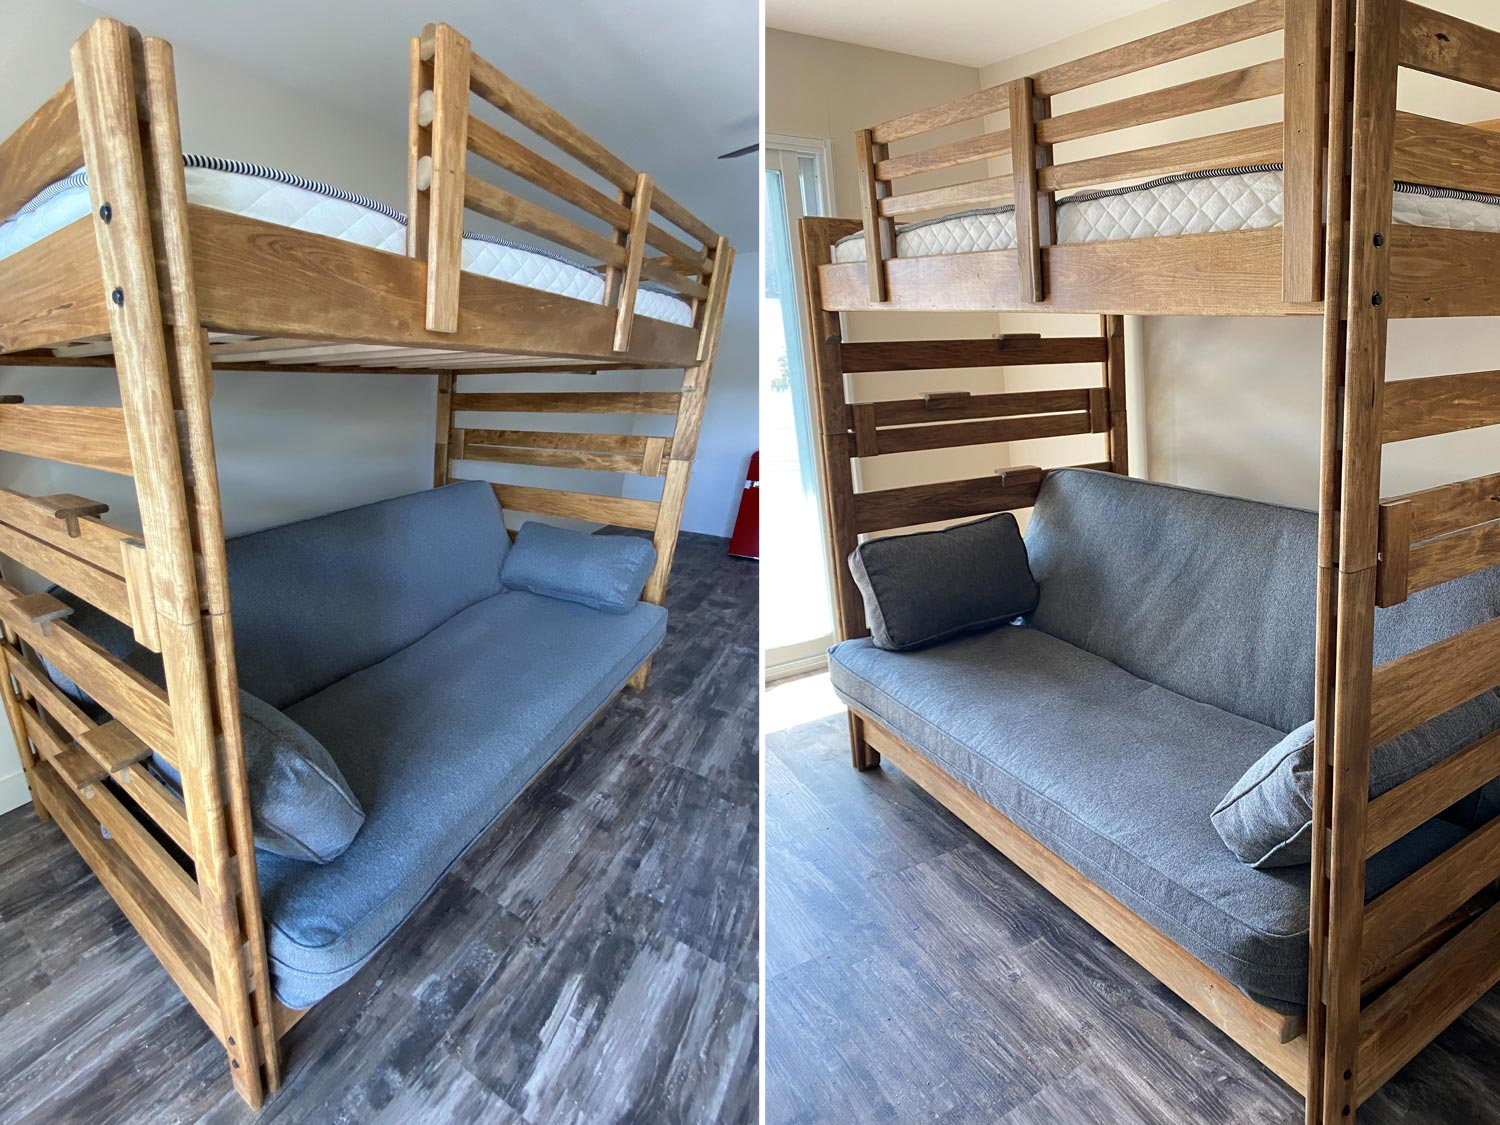 Bunkie Bed Single Top Double Bottom Coverts to Sleeper Sofa